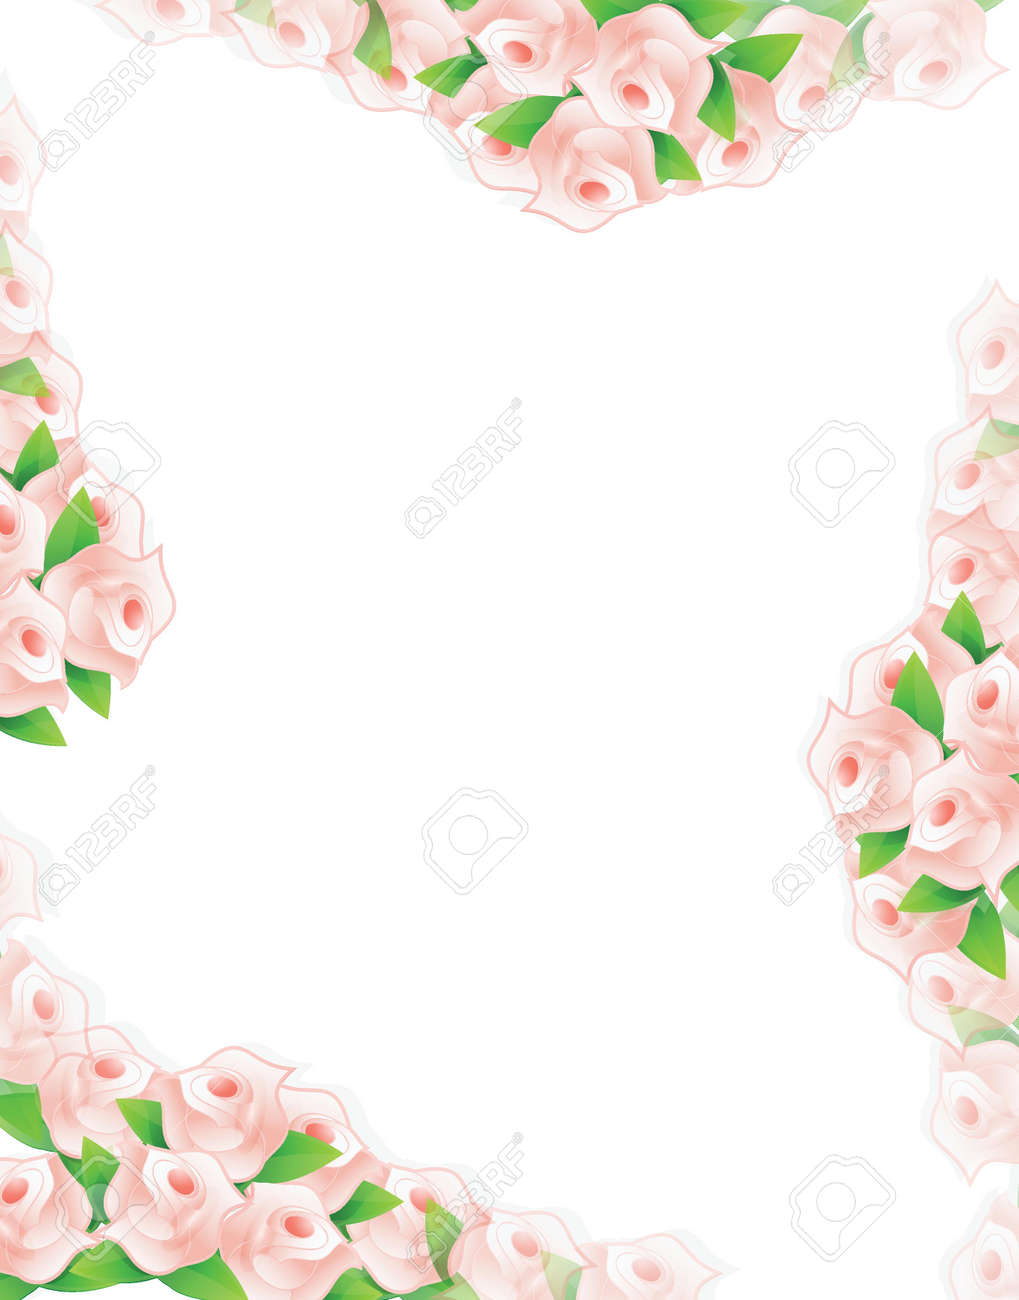 pastel color flowers illustration designs over a light background Stock Vector - 20151972